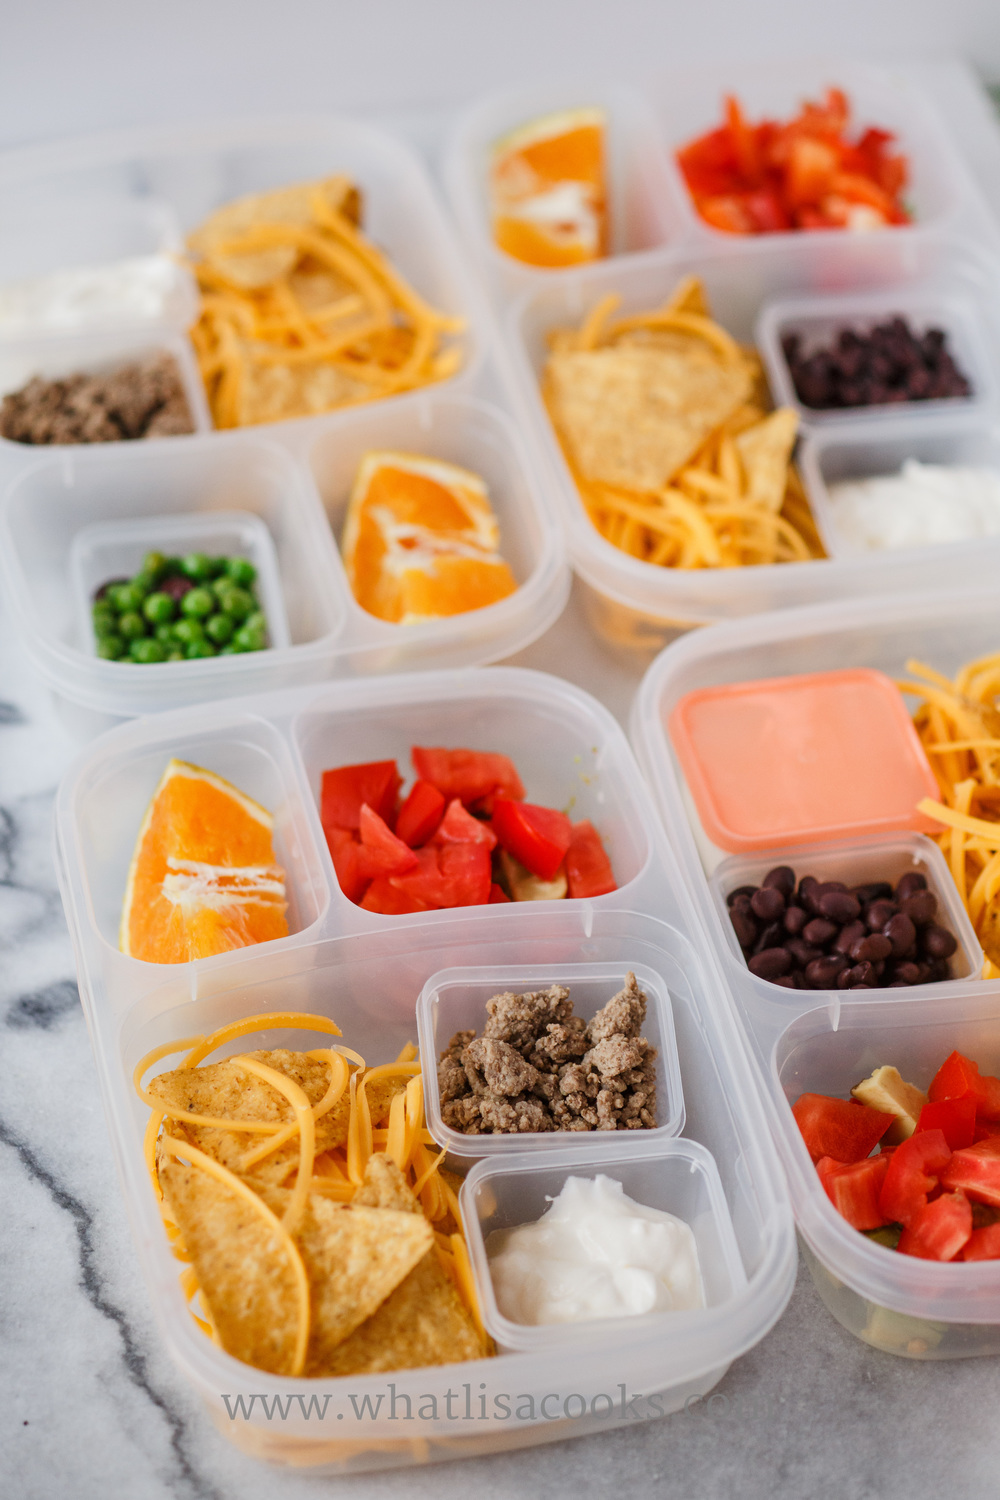 Nacho kits: tortilla chips, shredded cheese, meat or beans, sour cream.  Three have tomatoes and avocados with lime juice, one has black beans and peas.